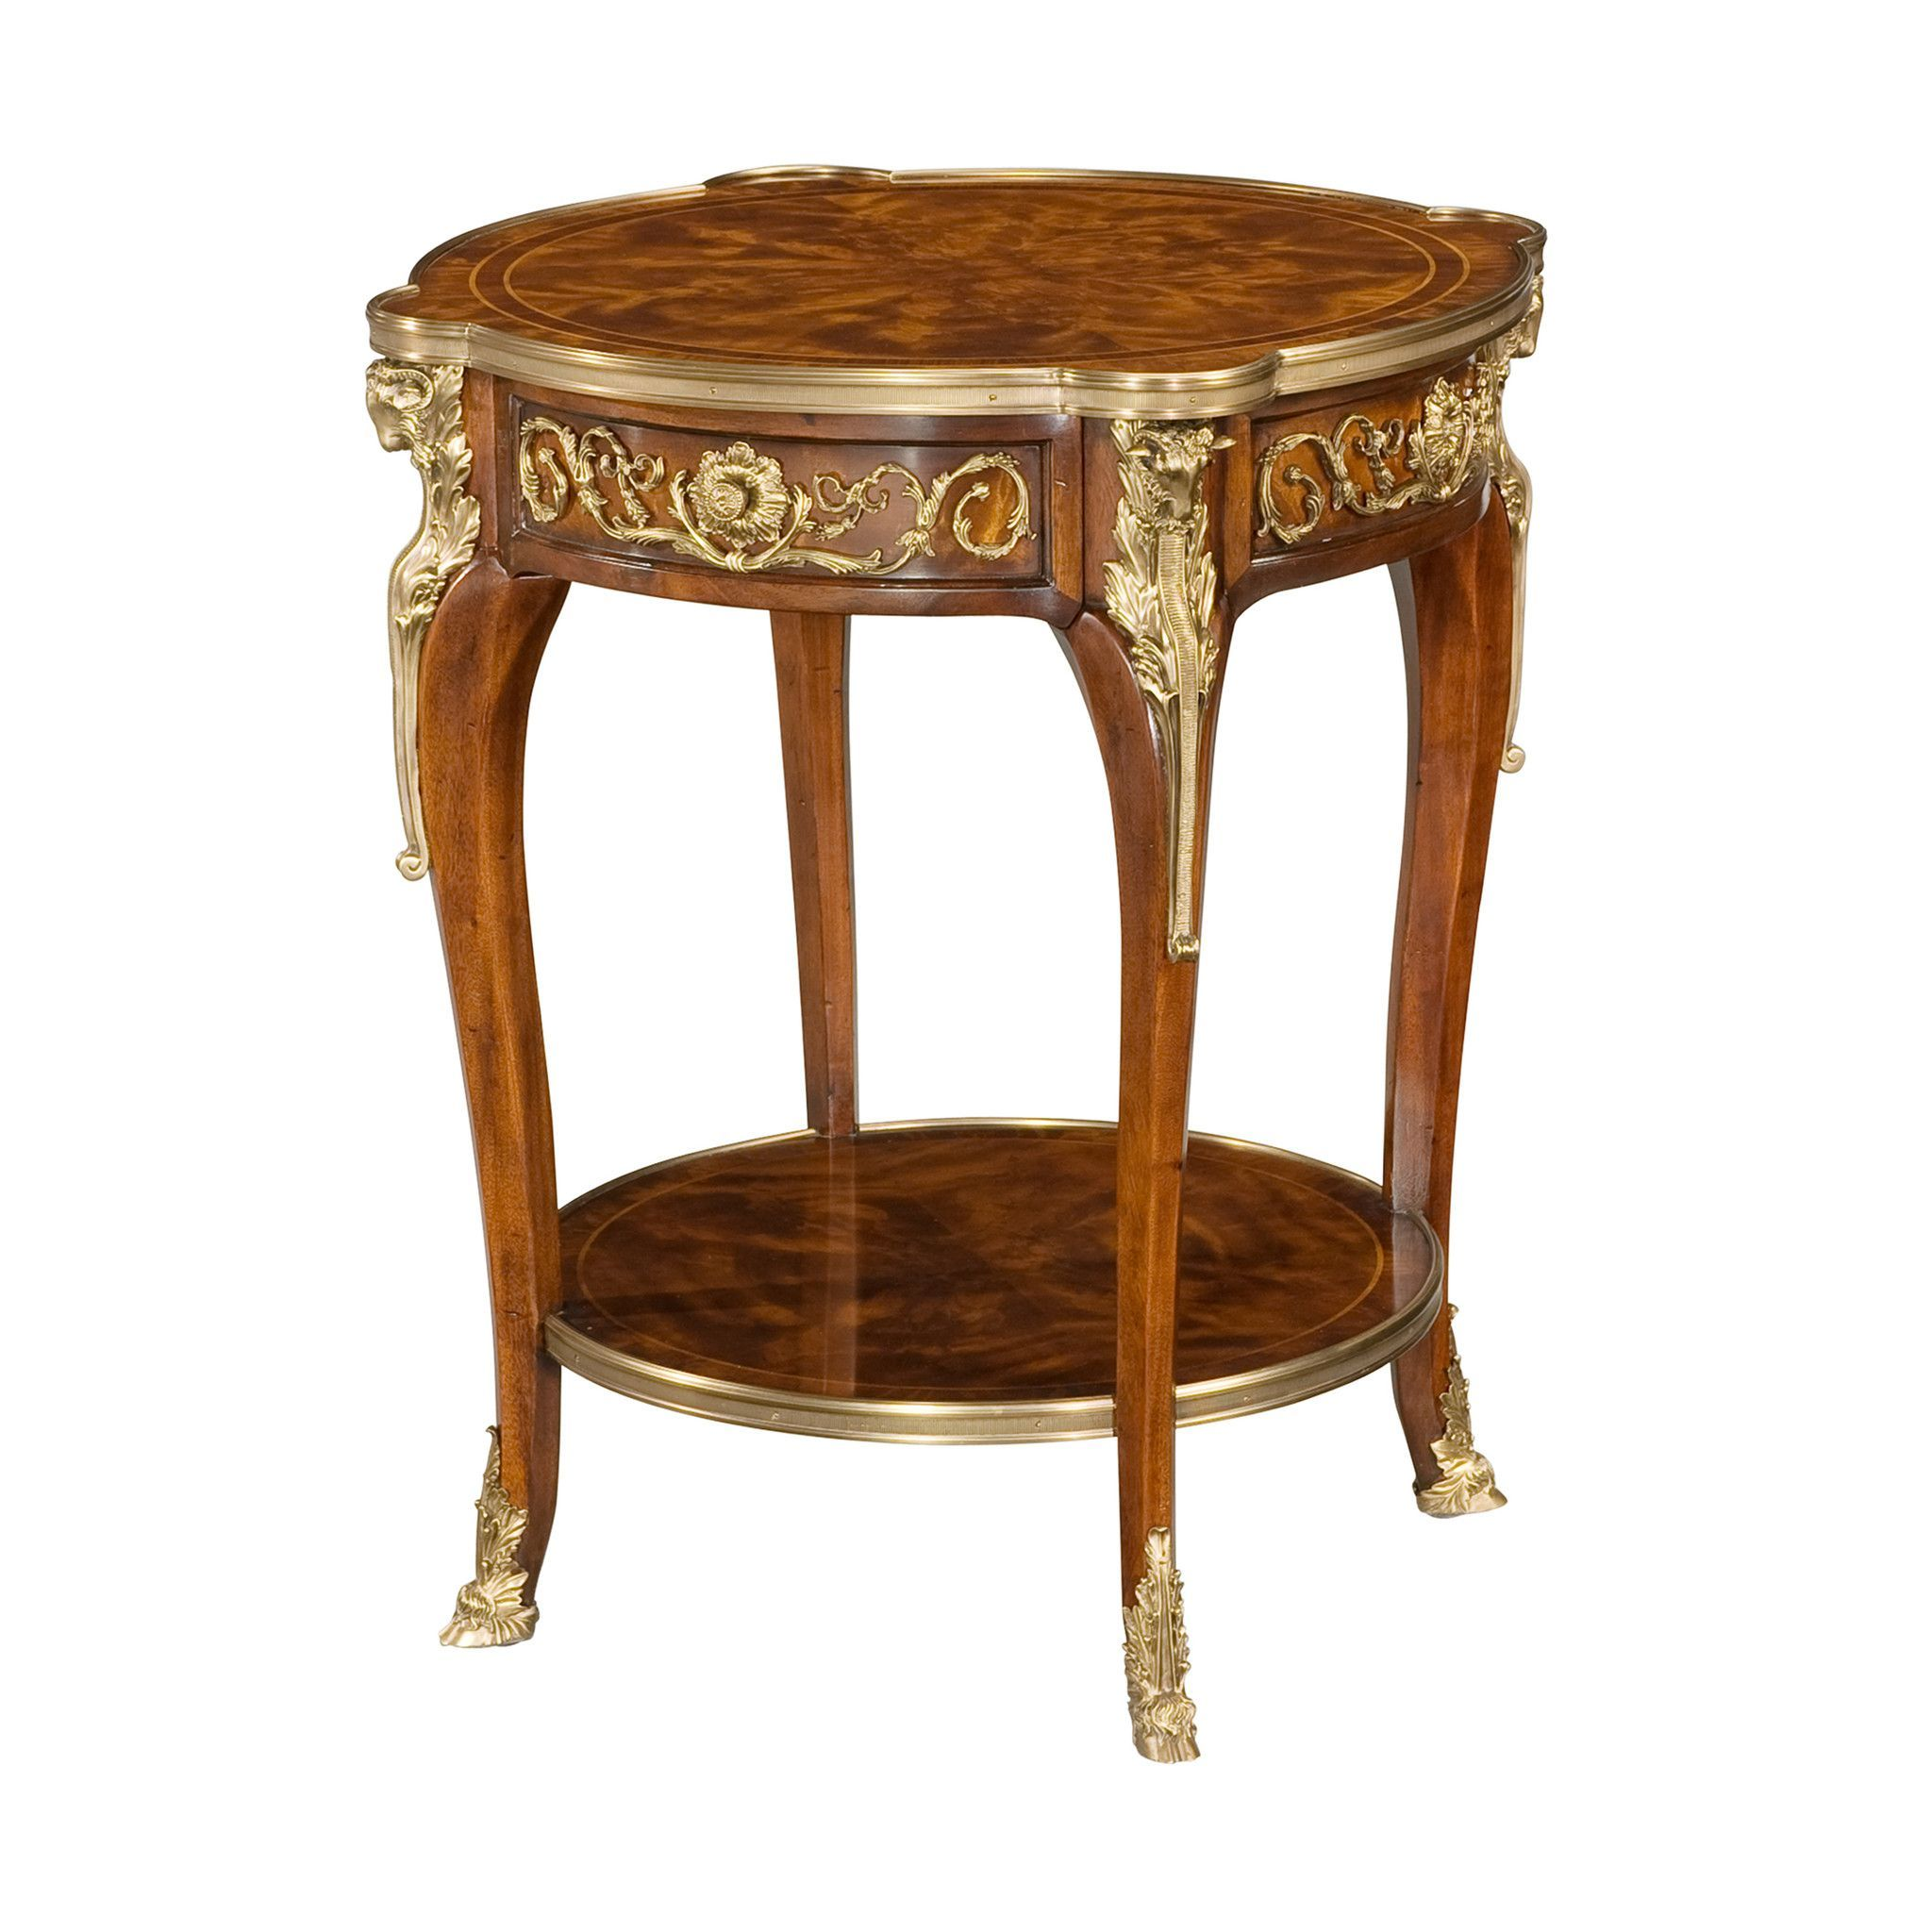 louis mahogany lamp table products baroque accent simple bunnings outdoor furniture set home decorators catalog razer ouroboros gaming mouse west elm wood art farmhouse breakfast